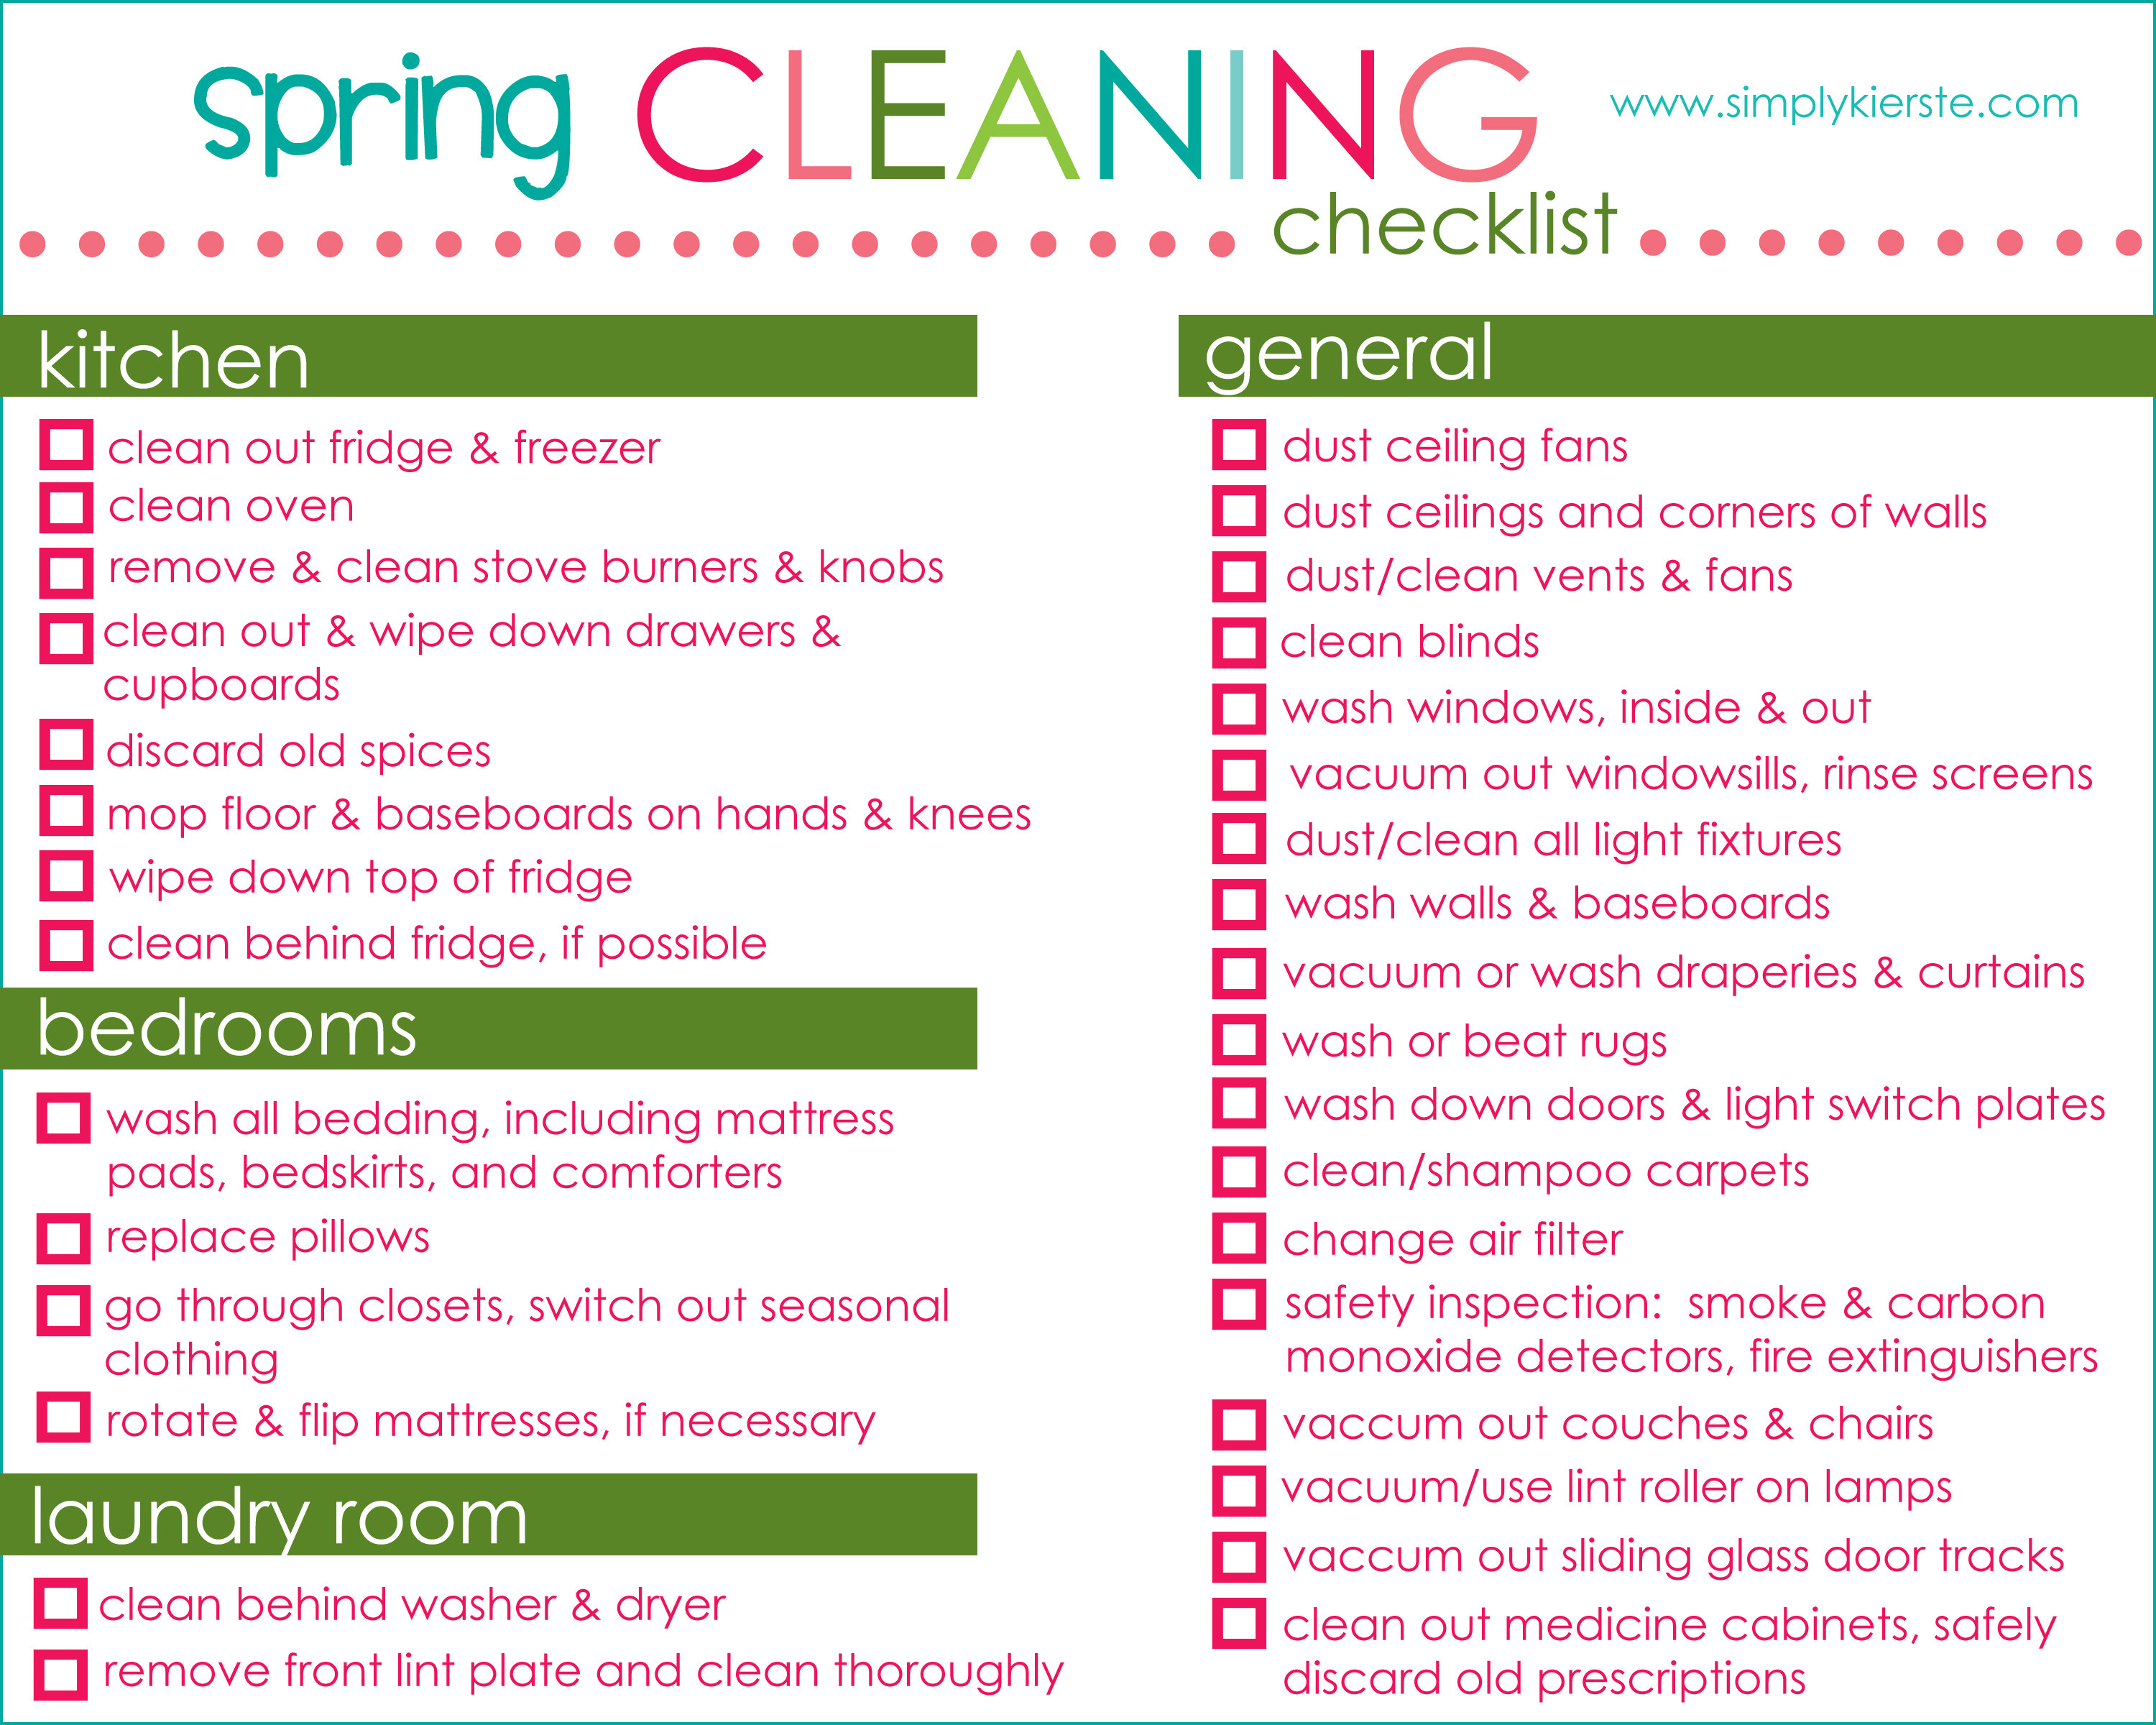 7 Images of Spring Cleaning Checklist Free Printable